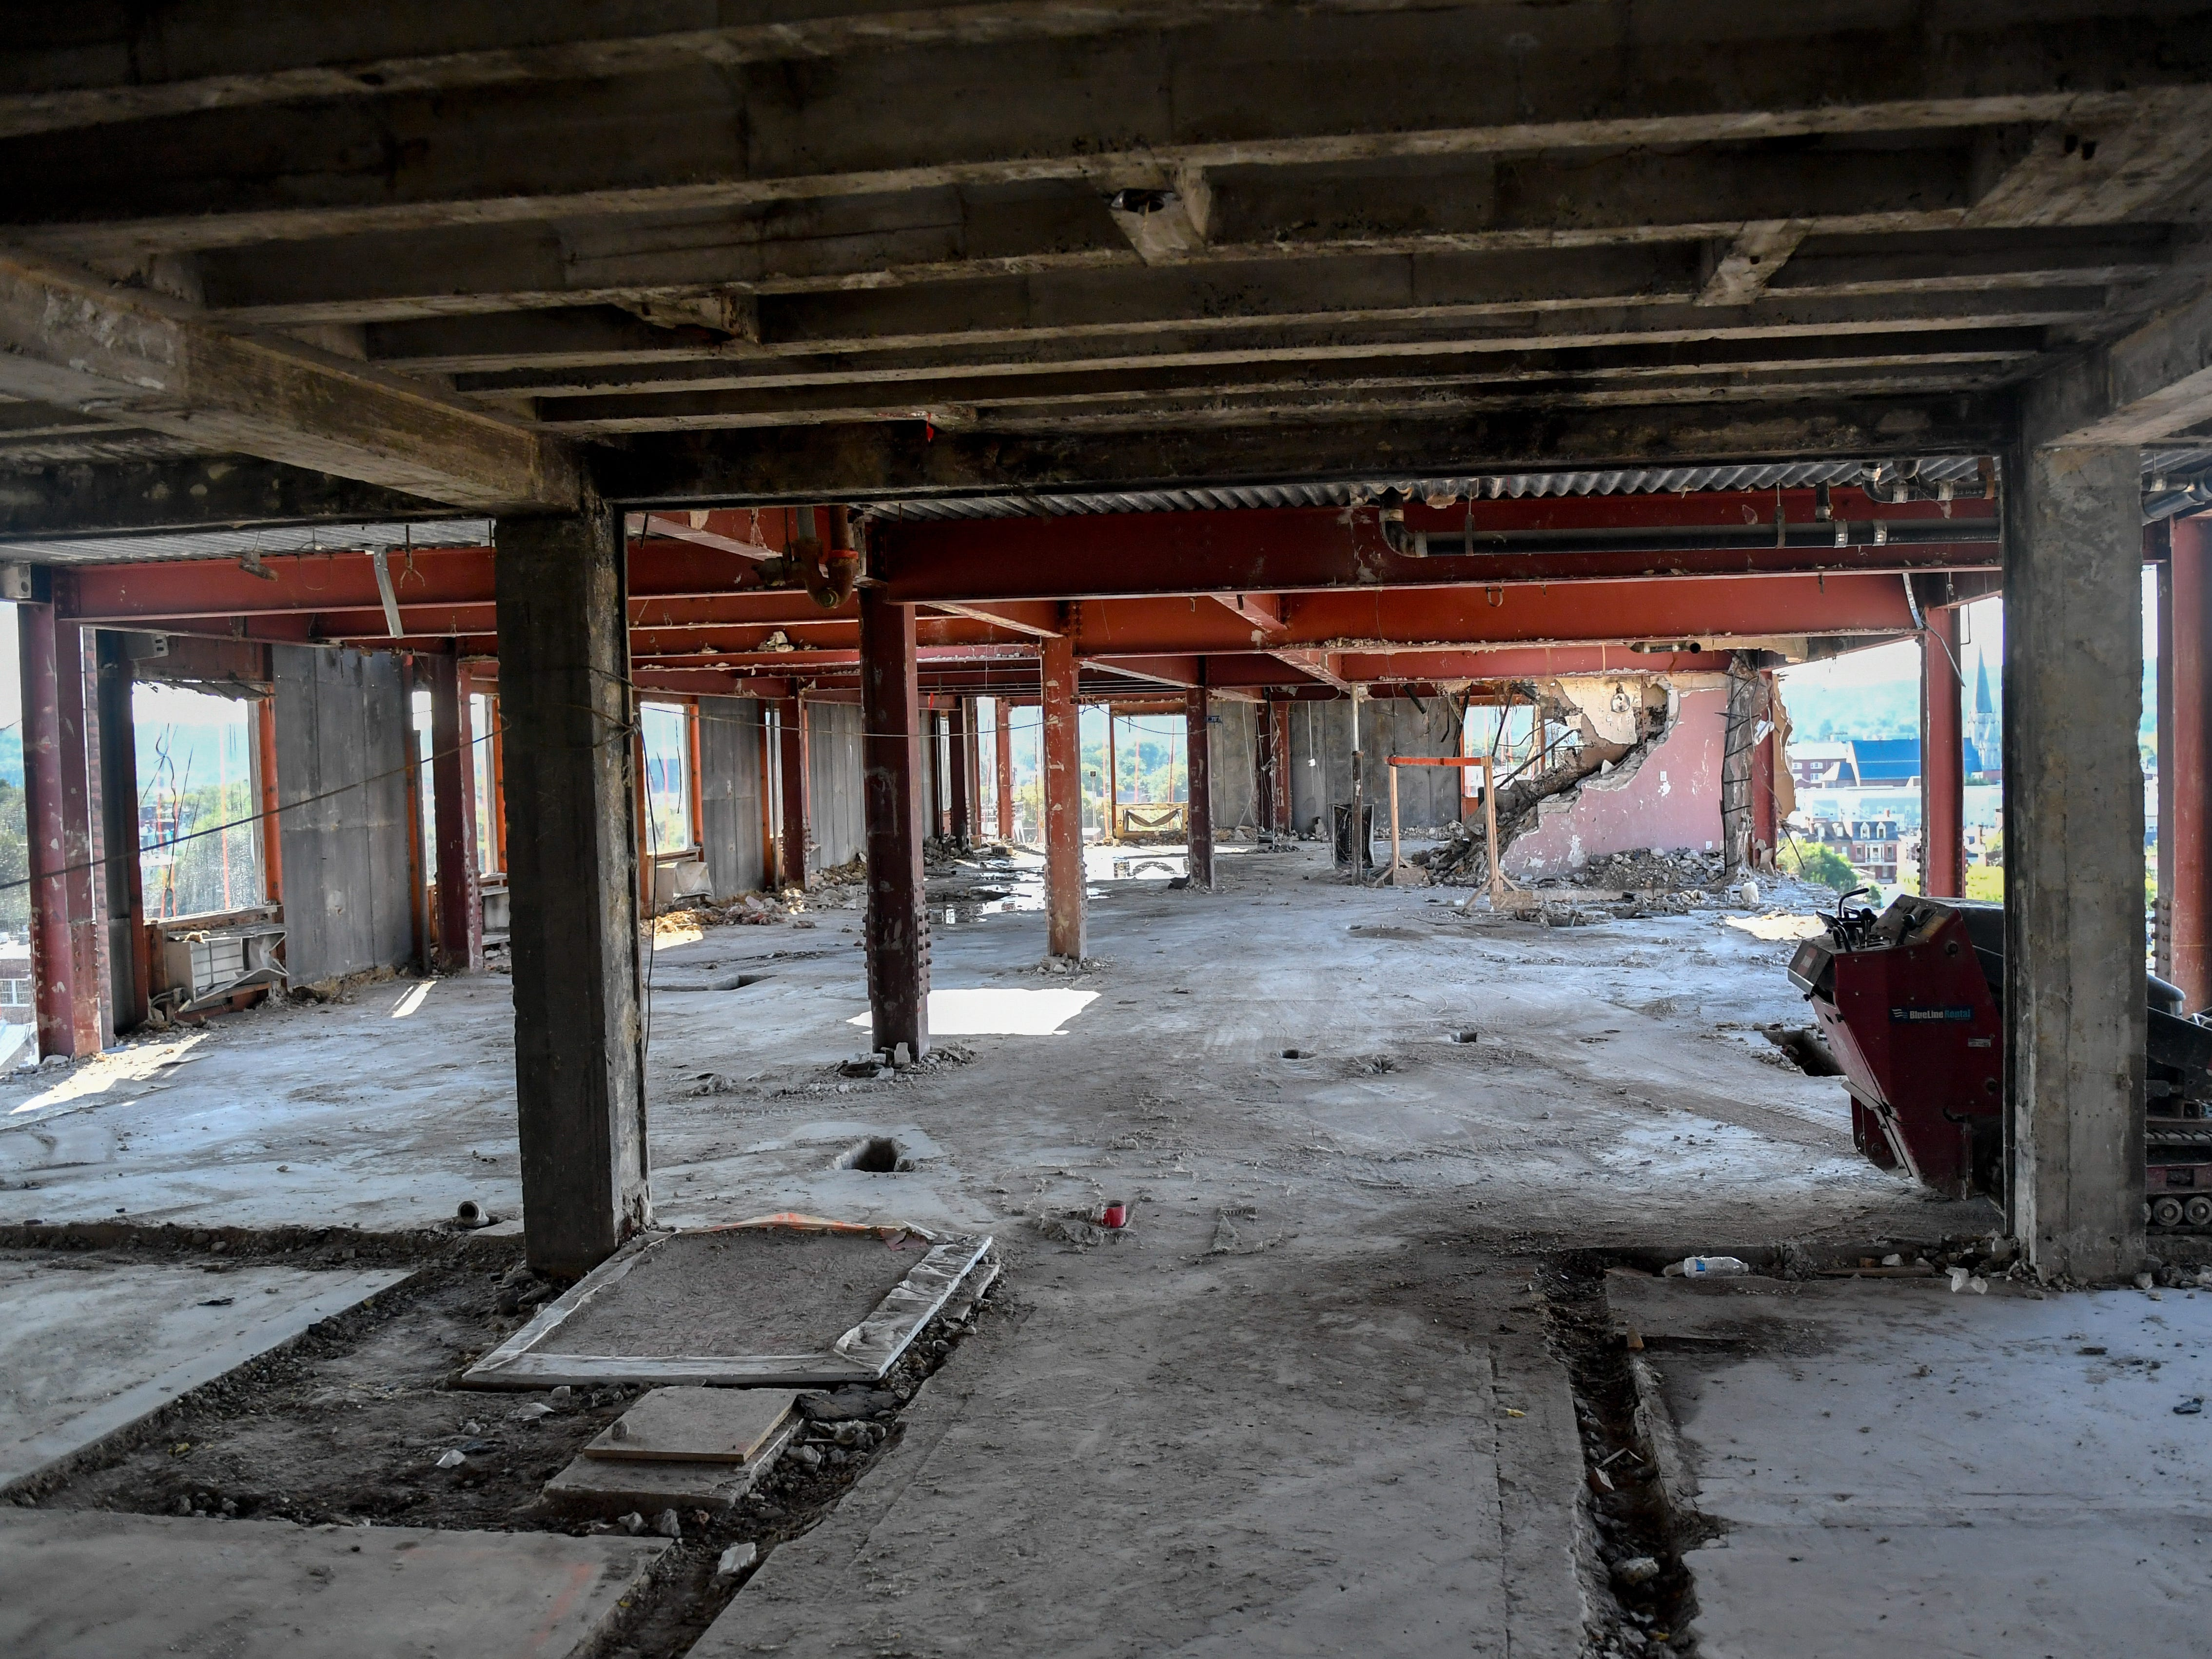 All the floors of the Yorktowne Hotel are gutted just like the seventh floor on October 4, 2018.